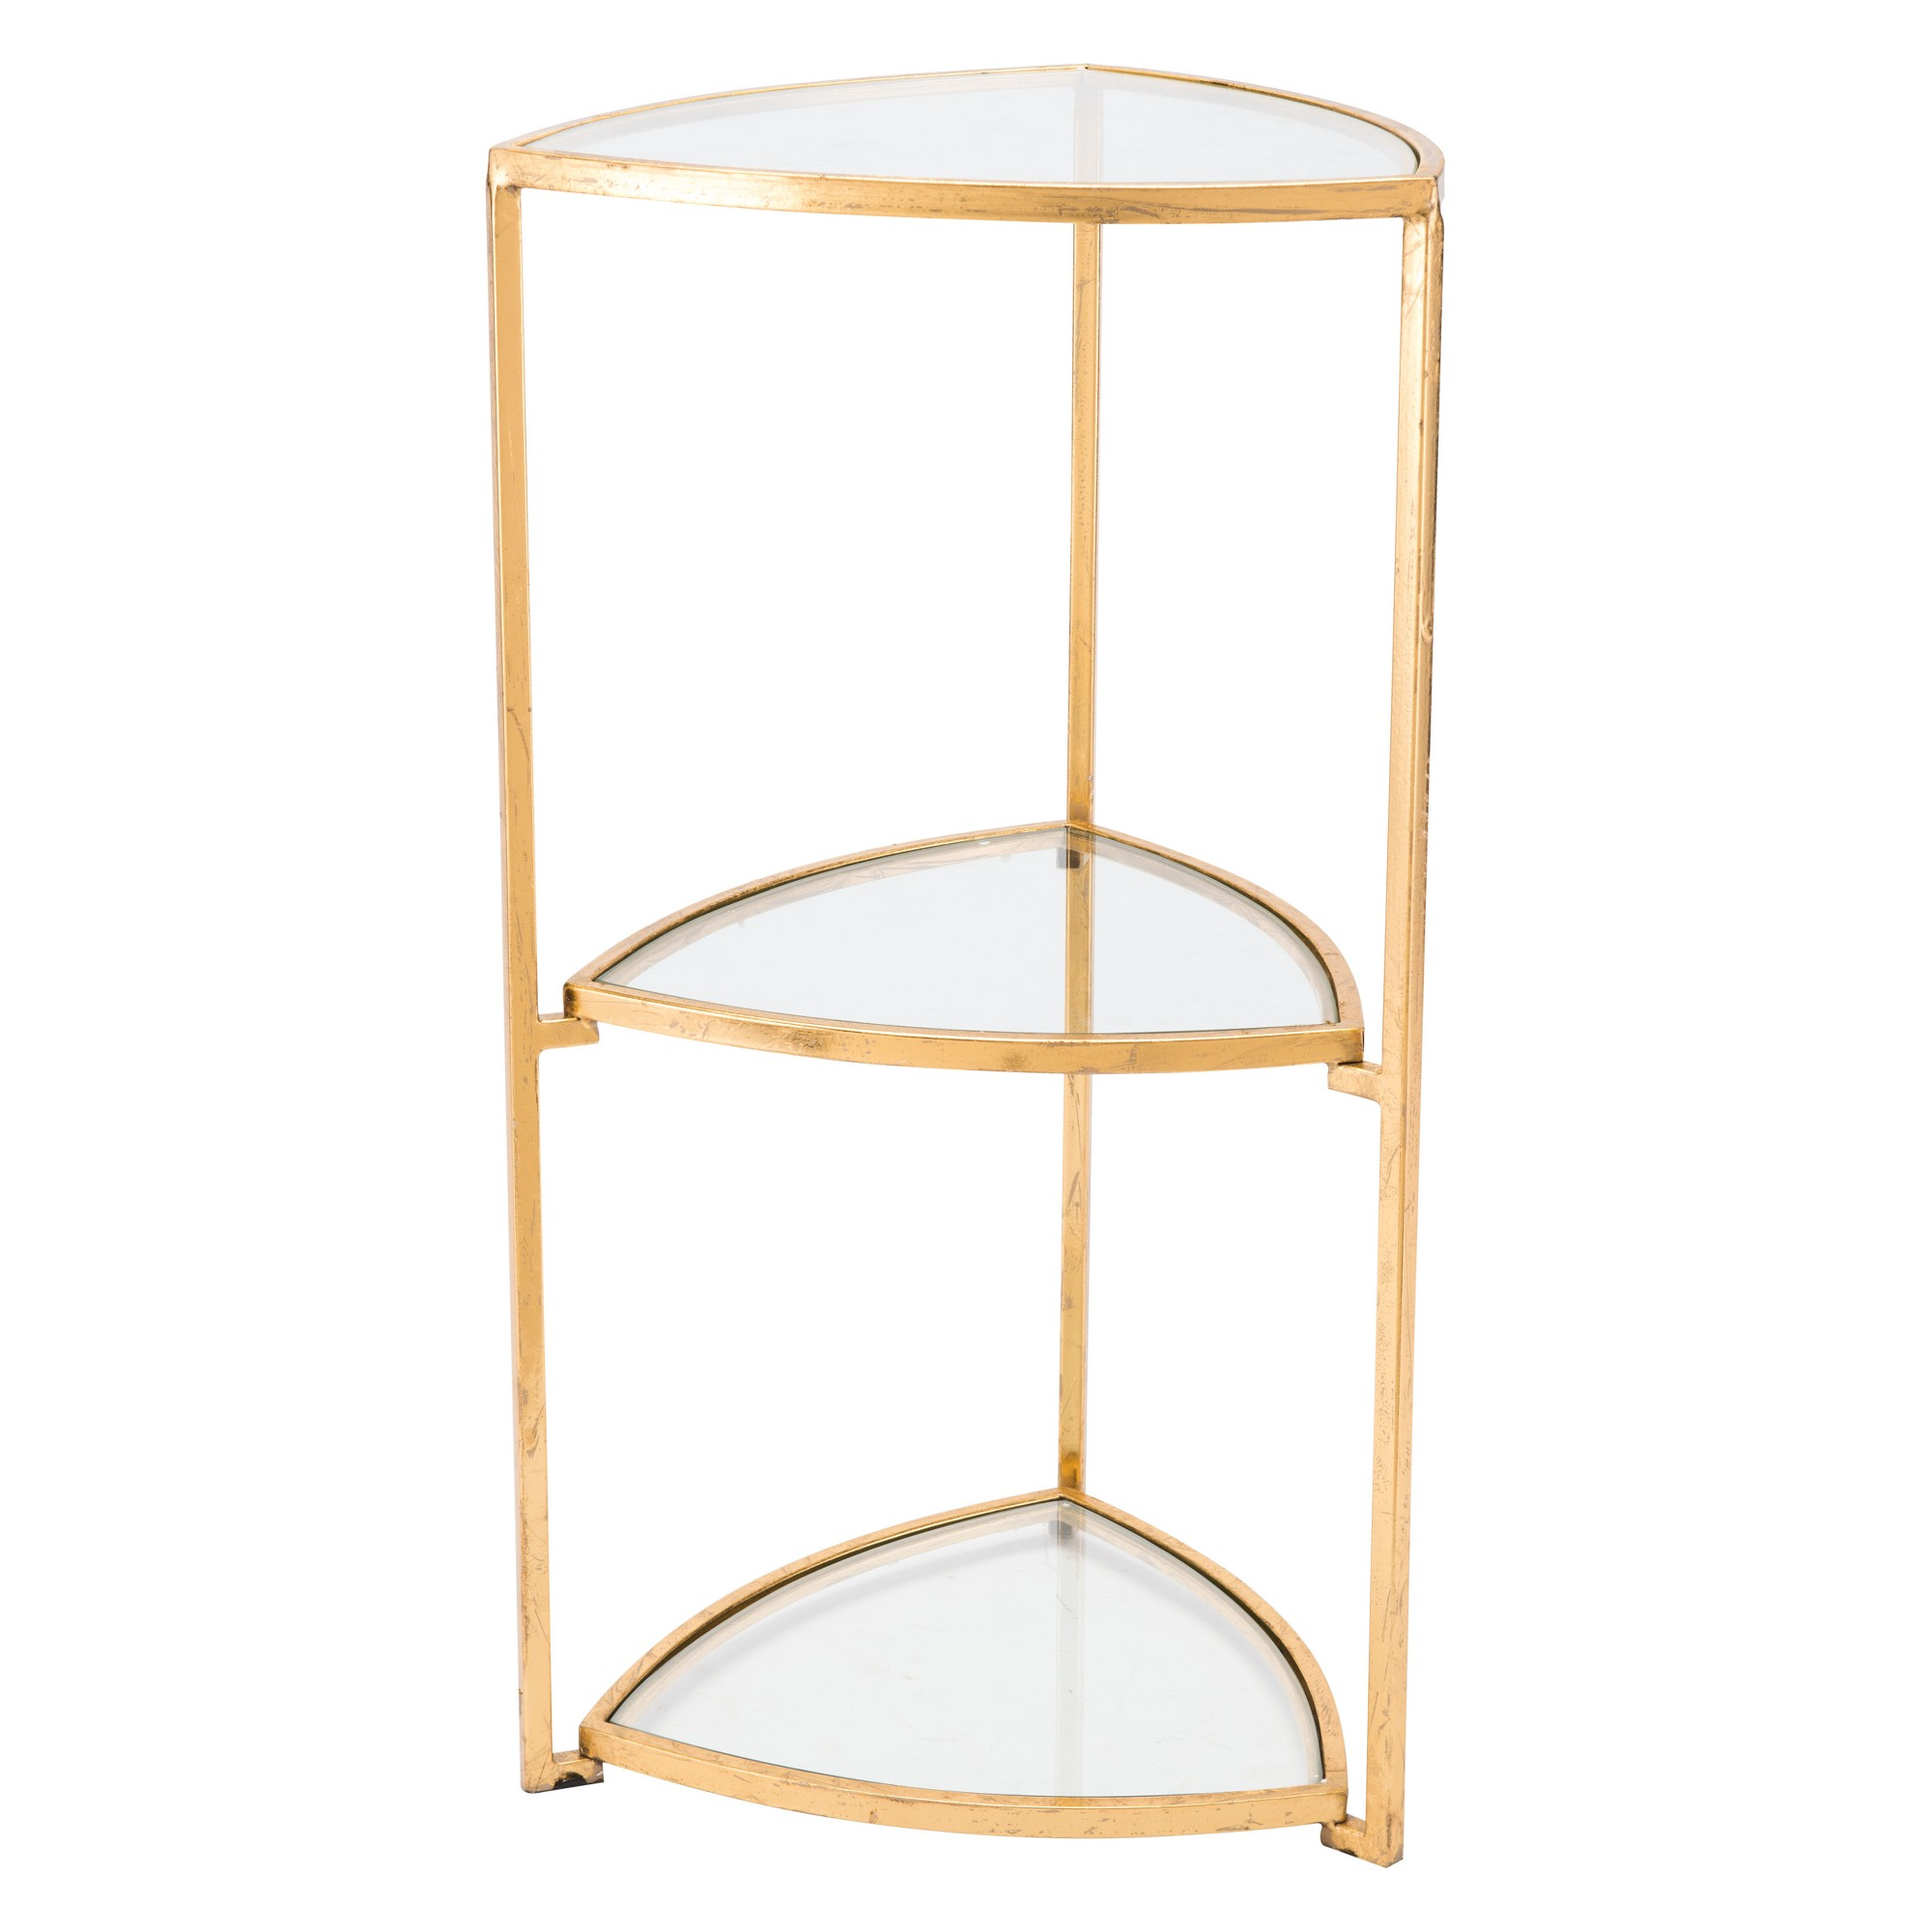 luxe tier glass and steel corner accent table gold home small outdoor storage end pottery barn graphers floor lamp inch long console entryway with baskets room decor lamps plus